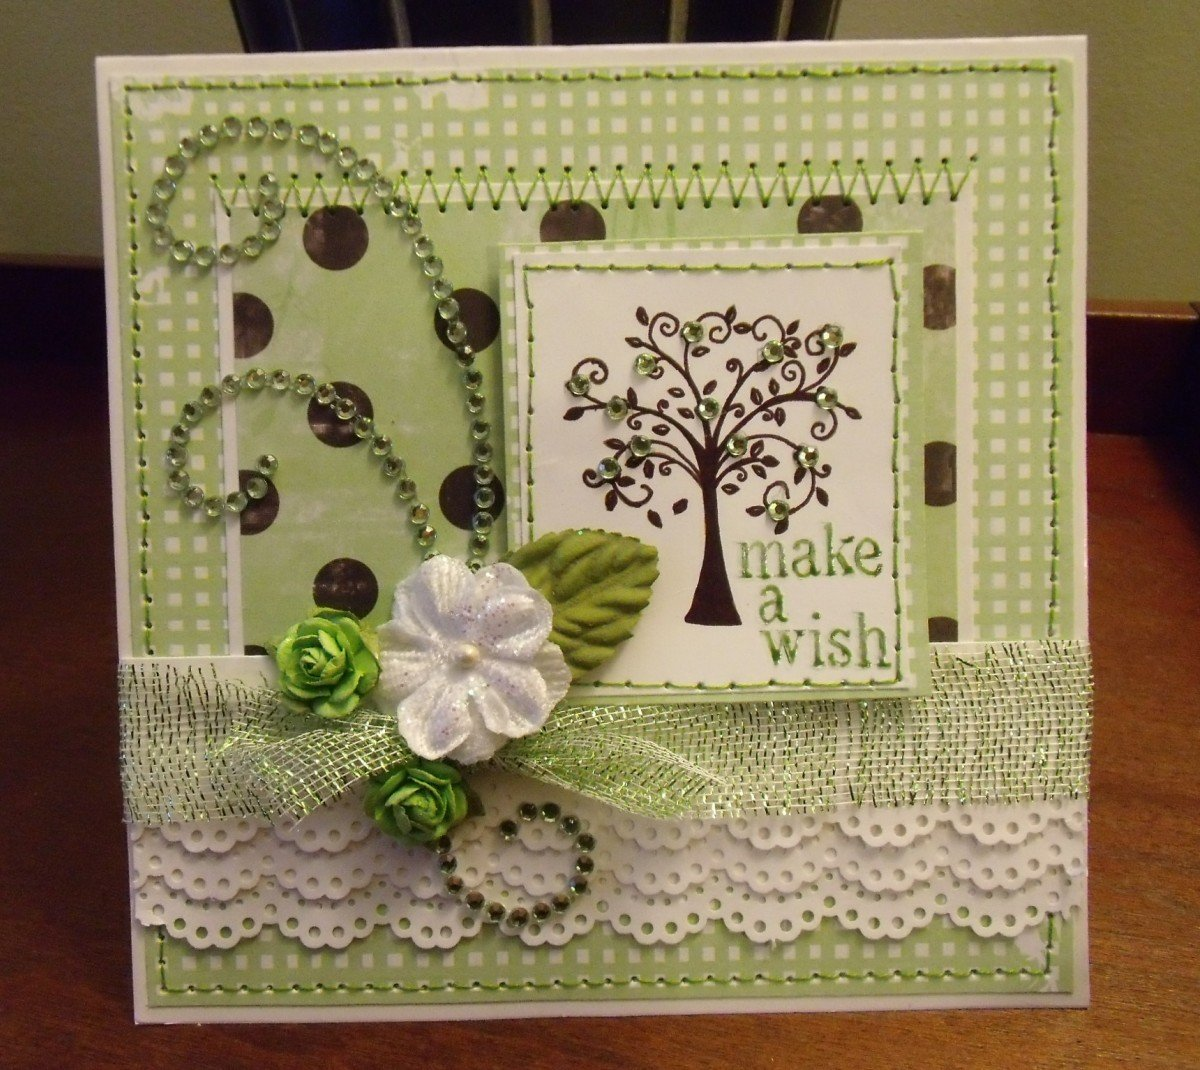 How to scrapbook greeting cards - Make A Wish Card Spring 2013